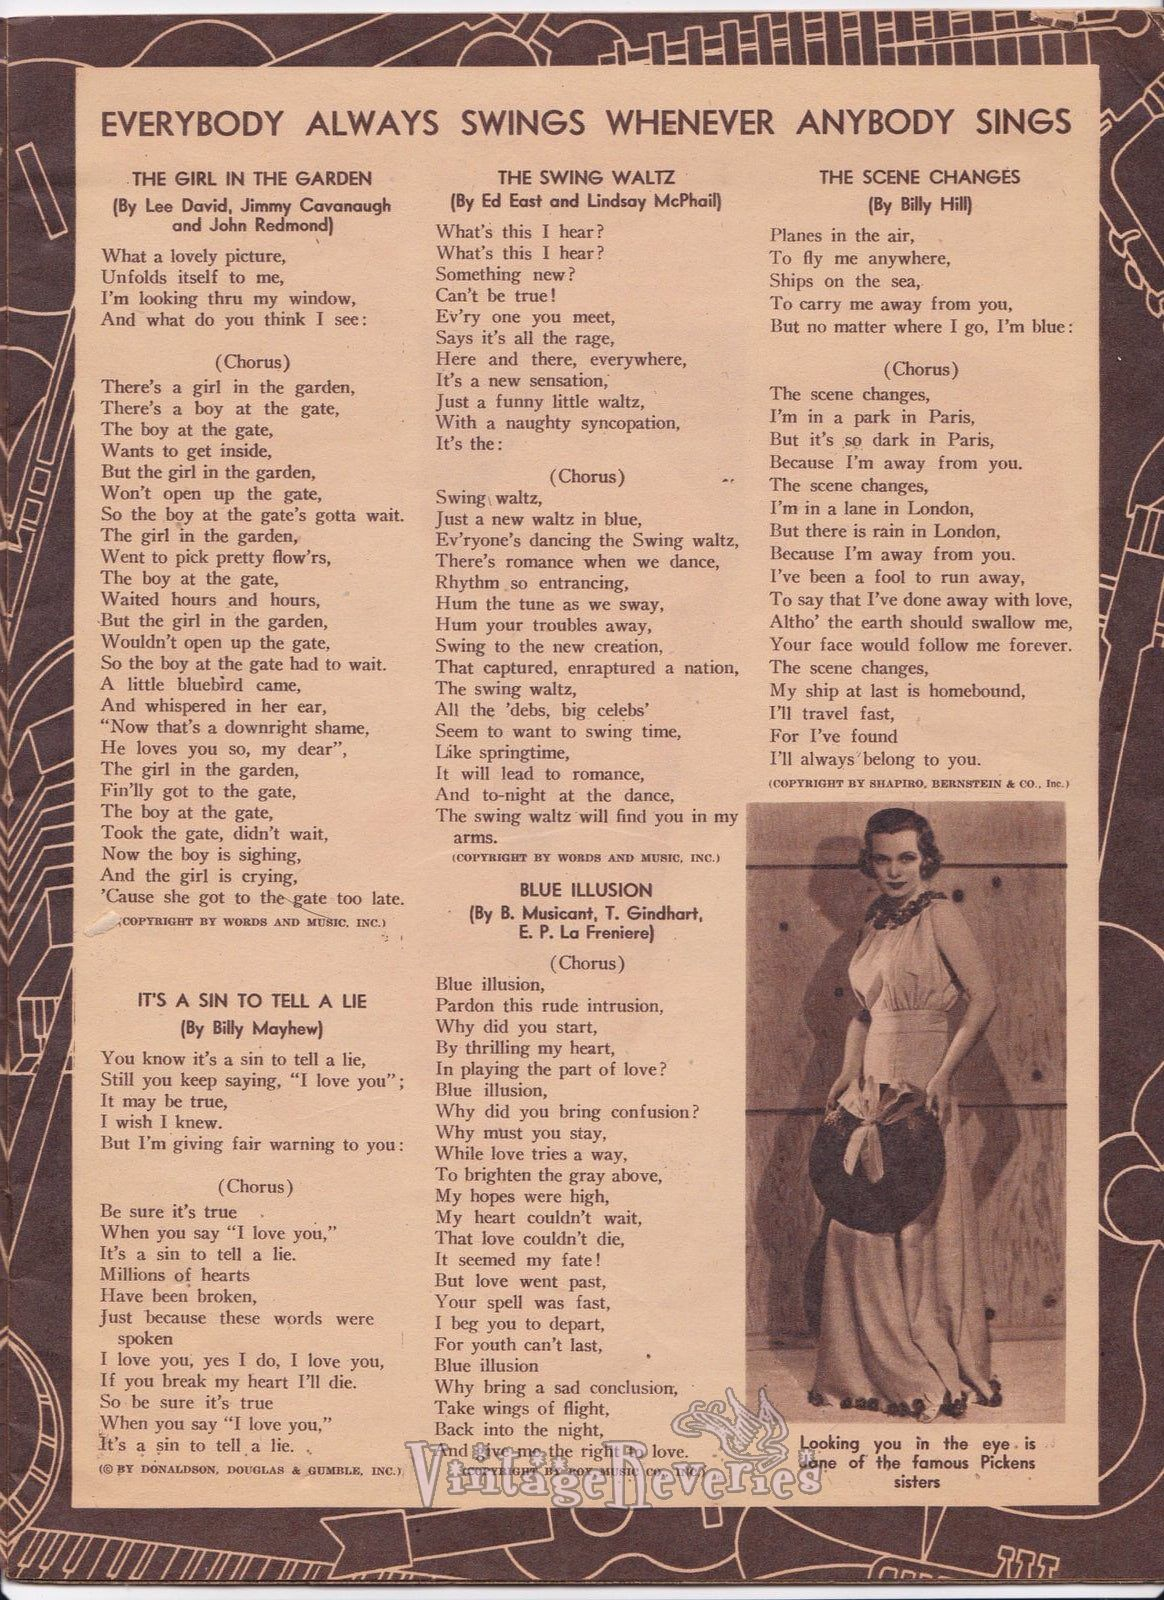 1930s pop song lyrics